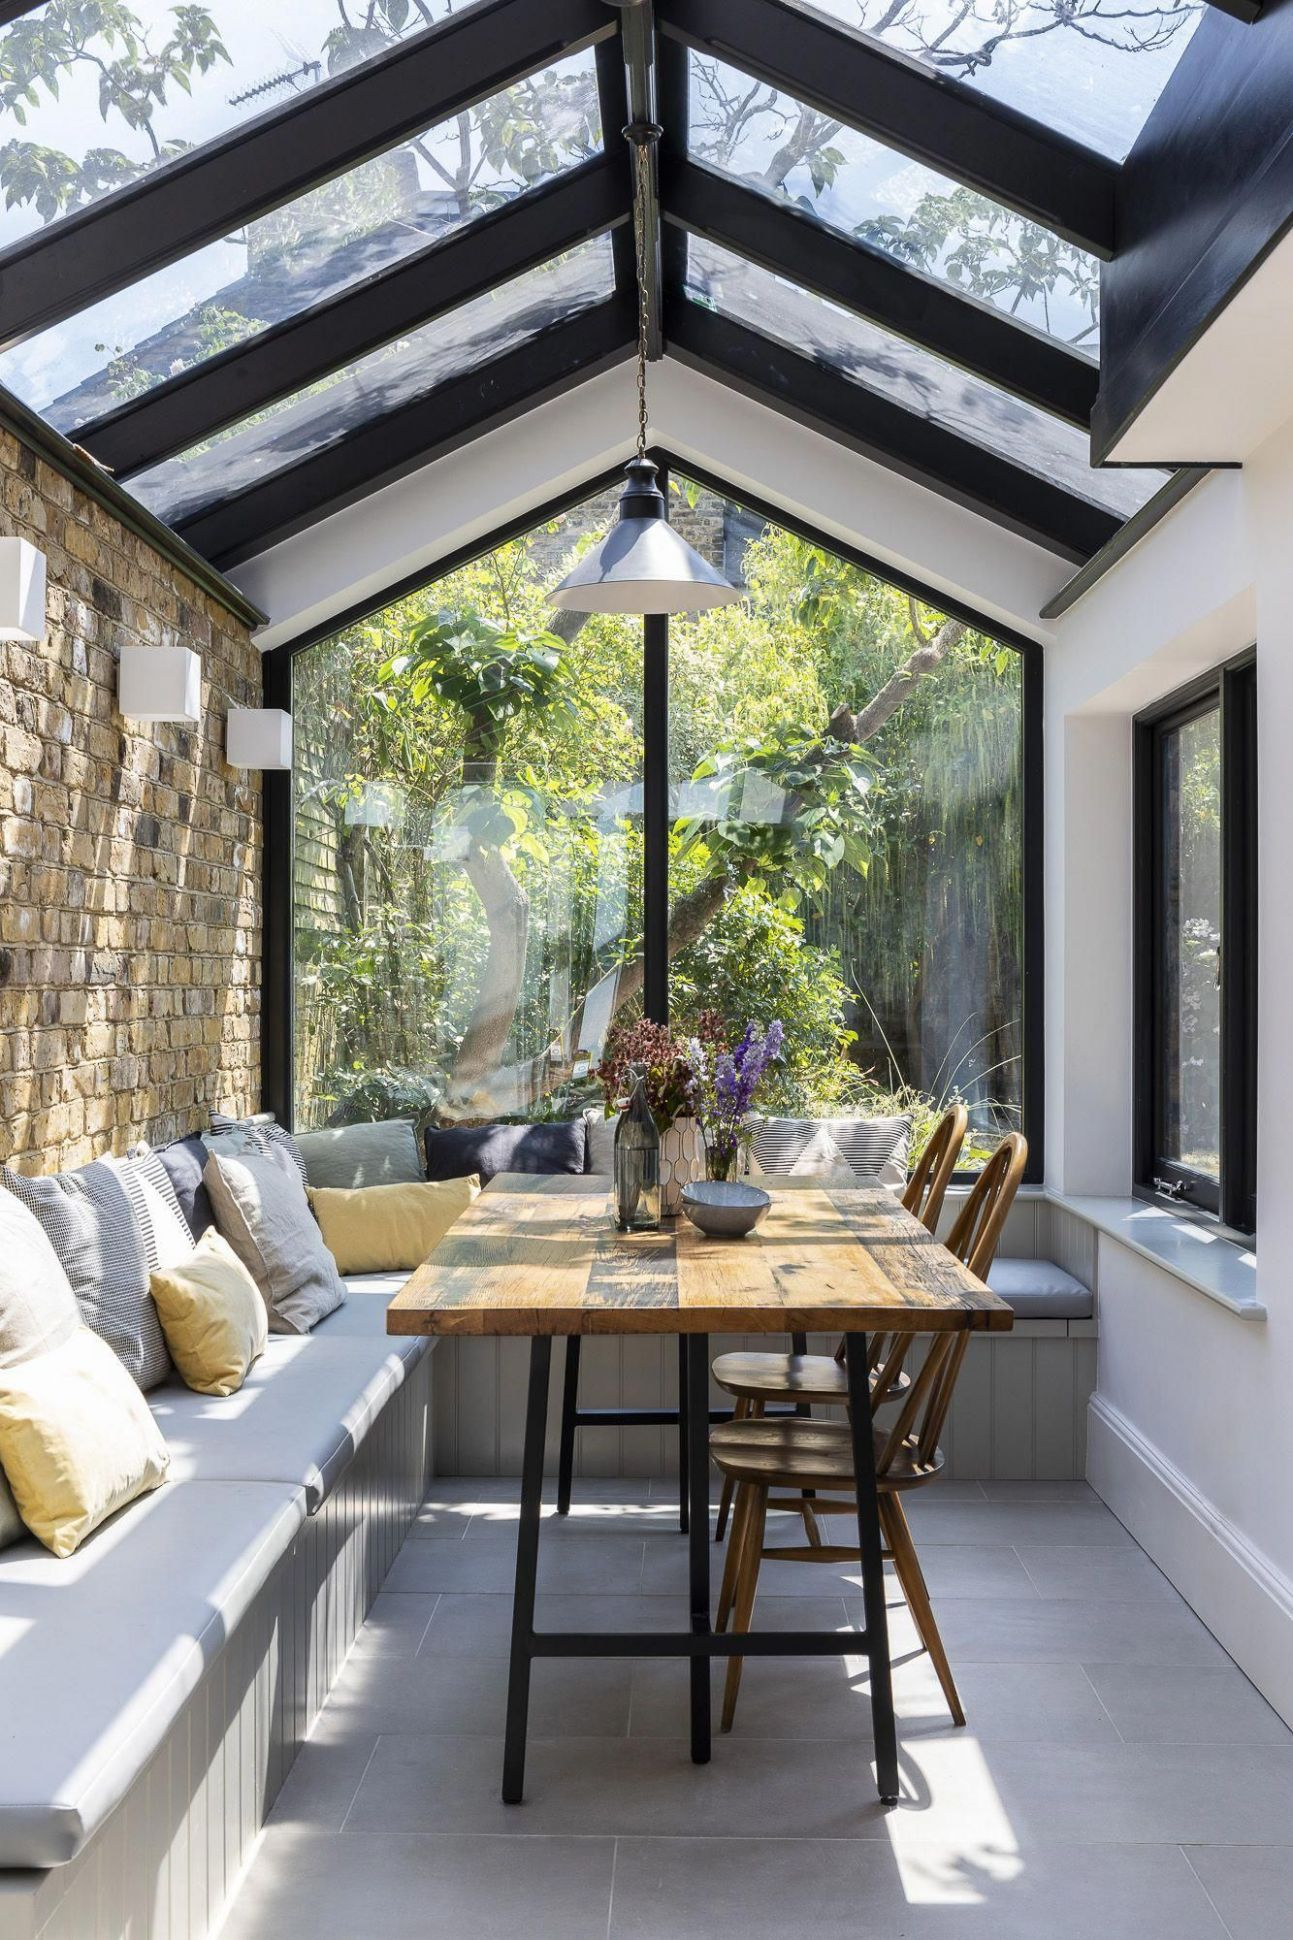 9 Stunning Sunroom Design Ideas - sunroom ideas pics